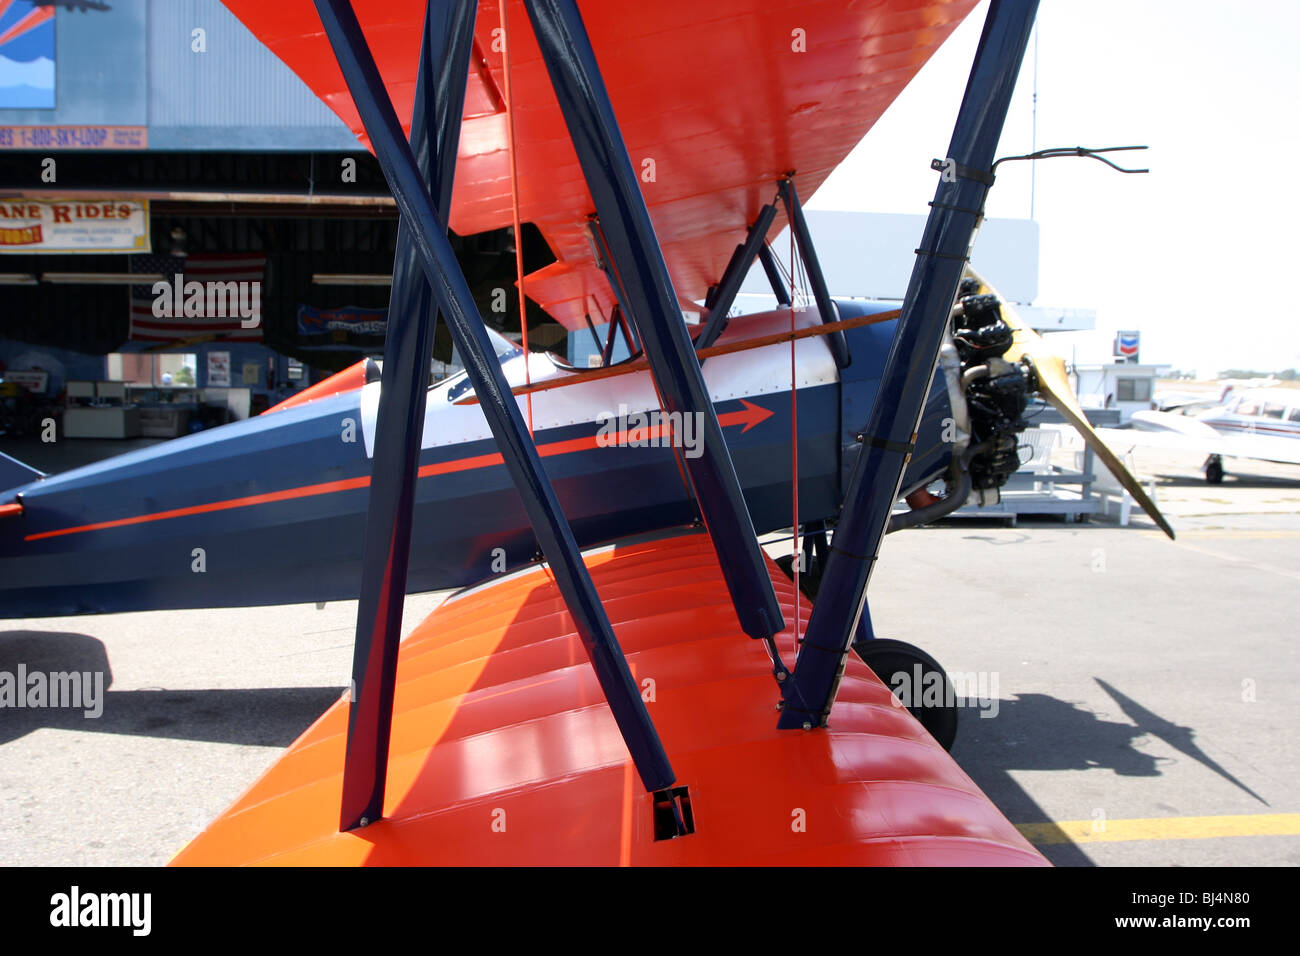 Side view of Biplane. To be sold for editorial use only. - Stock Image